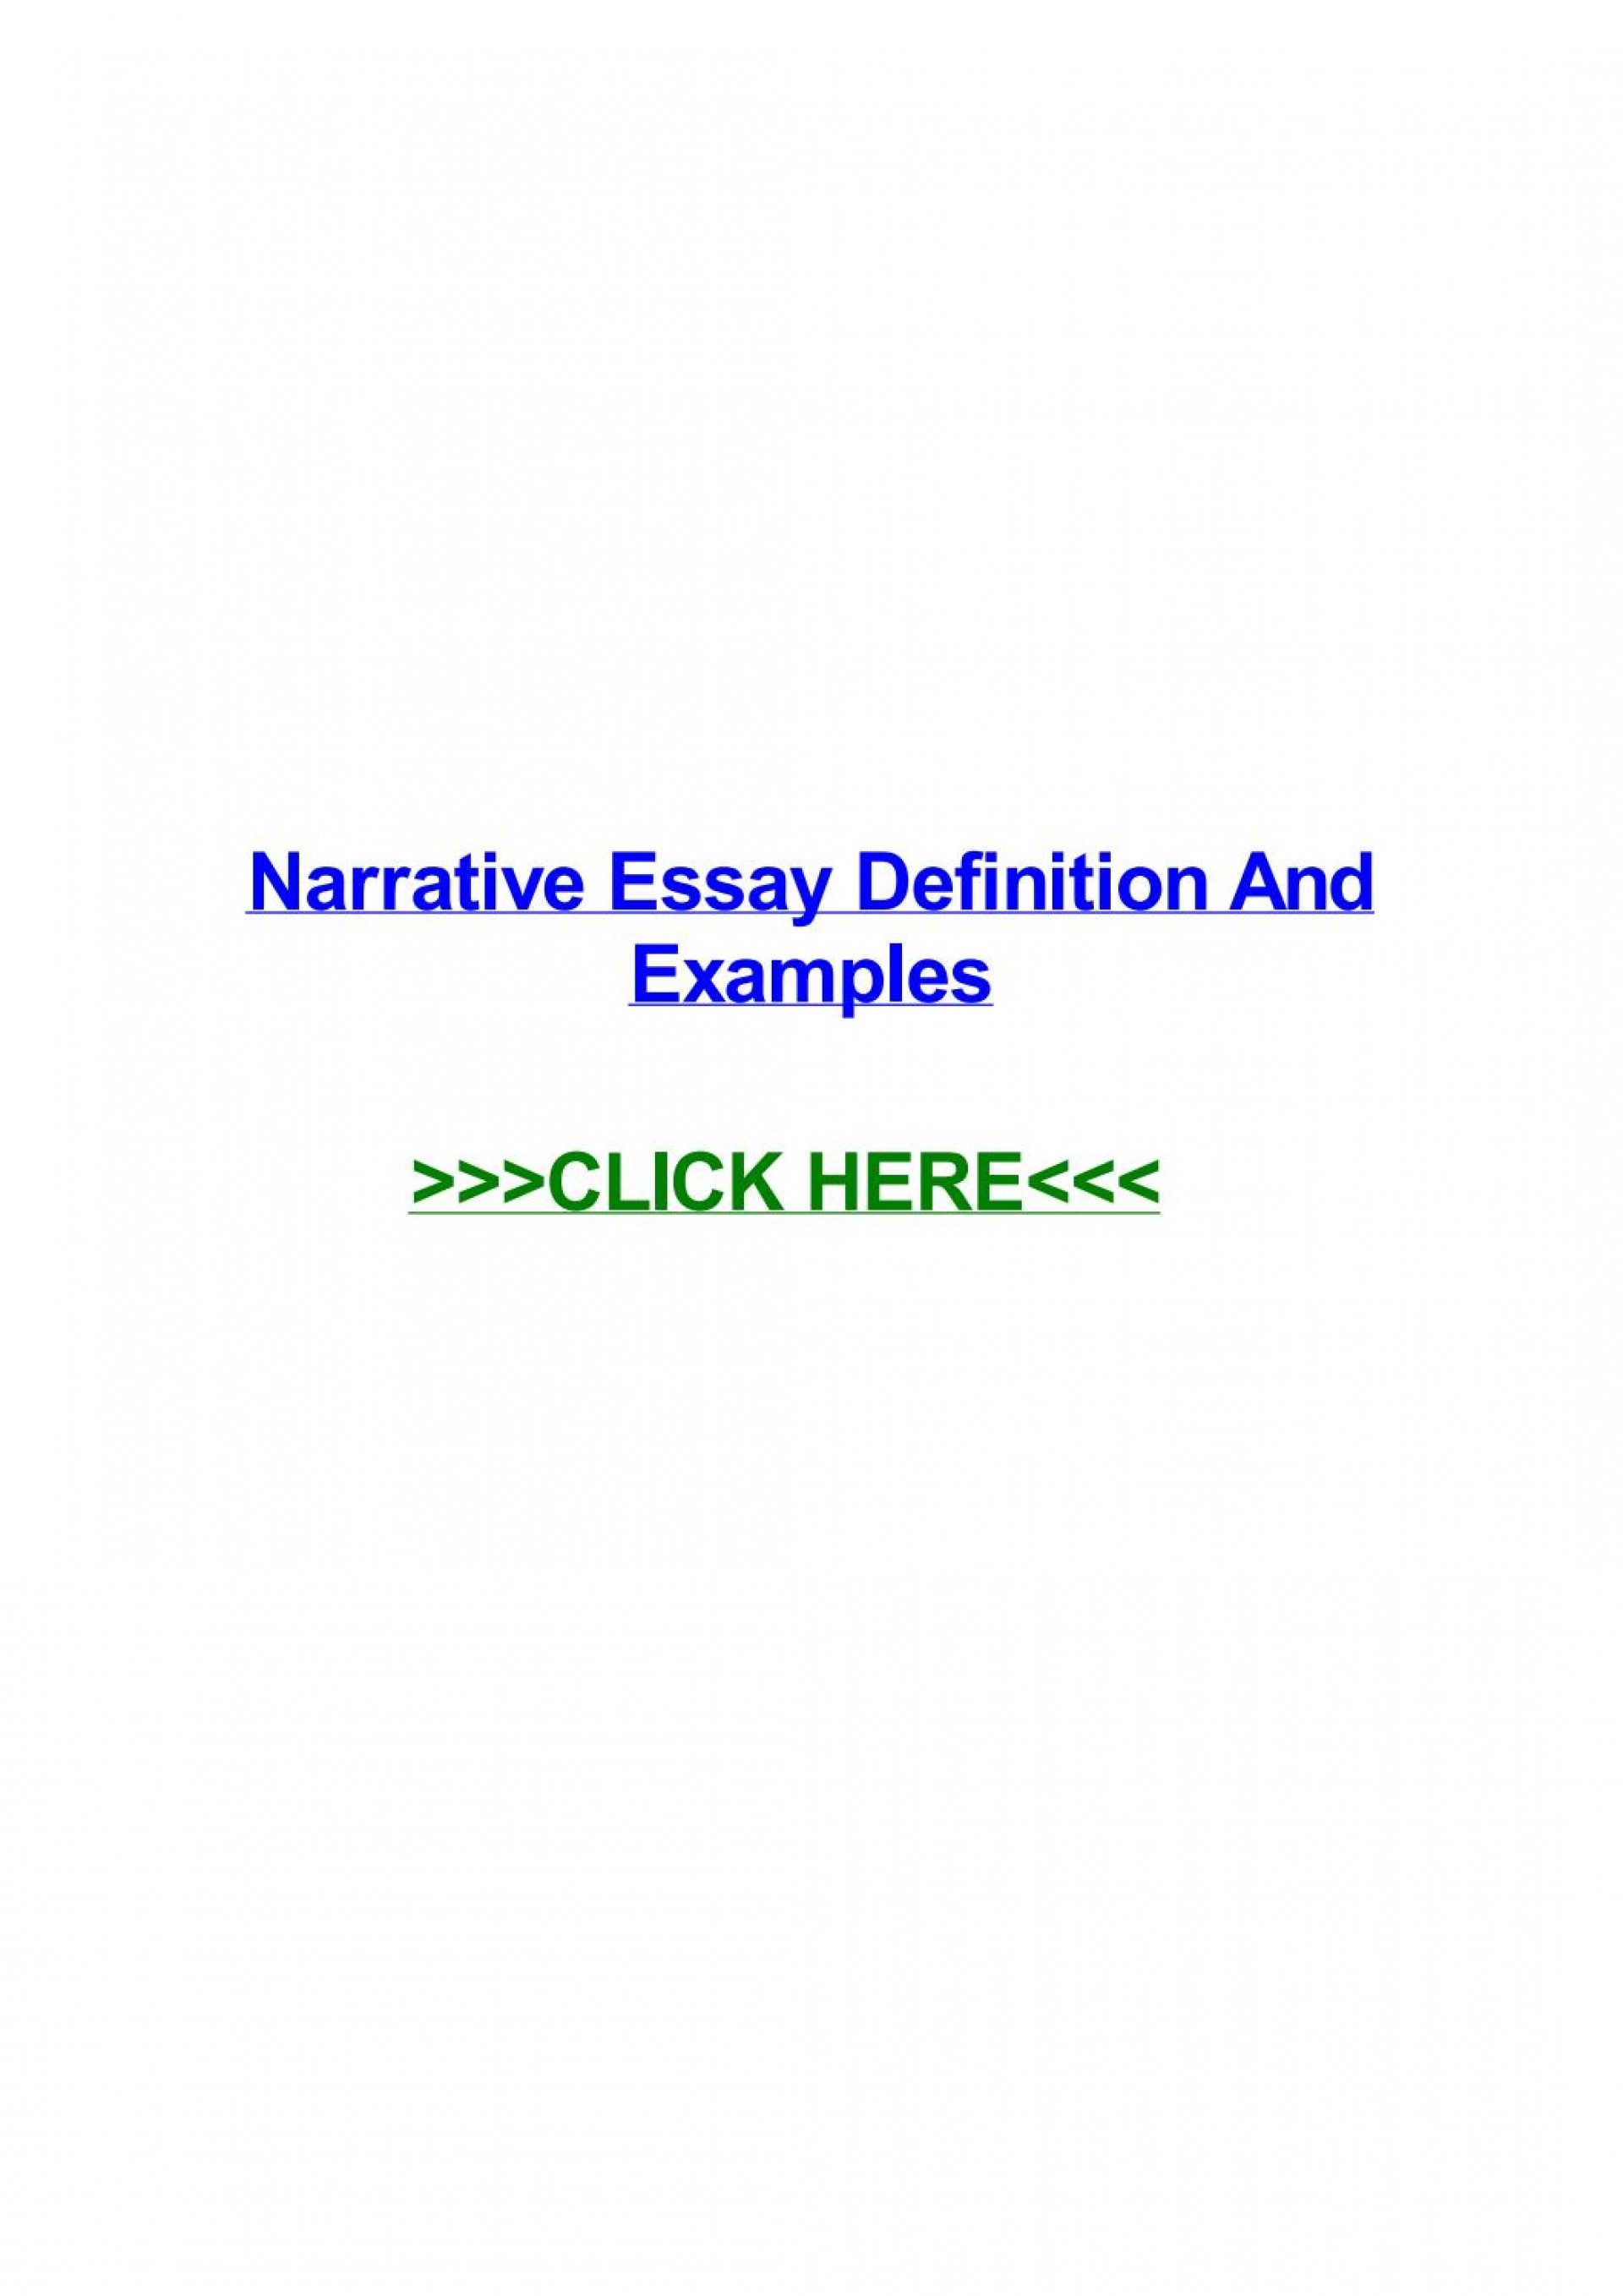 014 Narrative Essay Definition Example Page 1 Stunning Pdf Literature Slideshare 1920